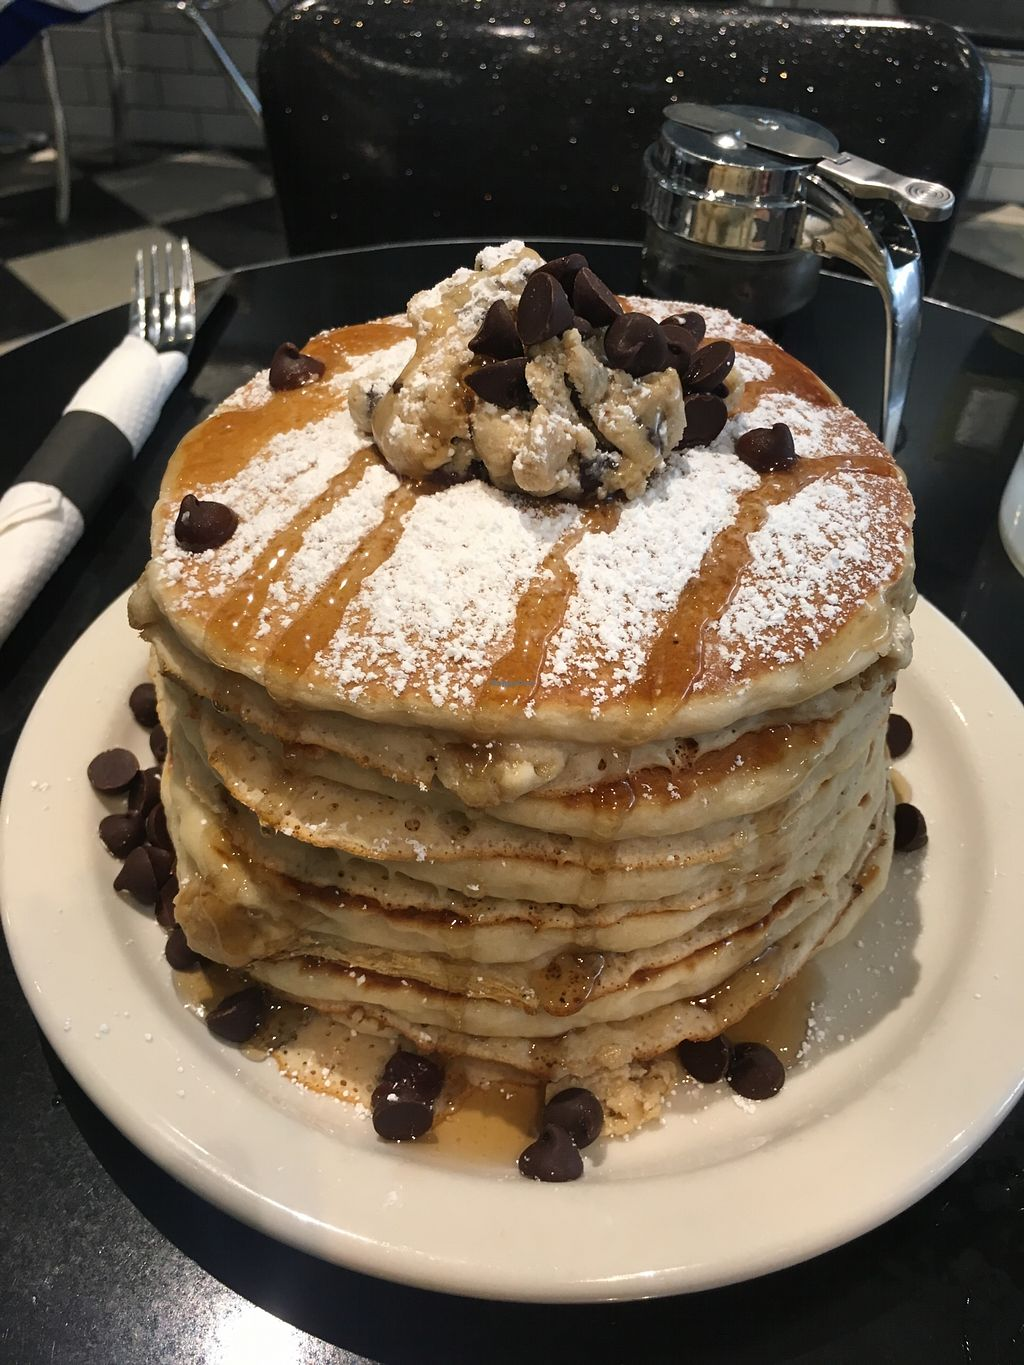 "Photo of Champs Diner  by <a href=""/members/profile/SkyFitzgerald"">SkyFitzgerald</a> <br/>Cookie dough pancakes tall stack <br/> October 20, 2017  - <a href='/contact/abuse/image/24286/316939'>Report</a>"